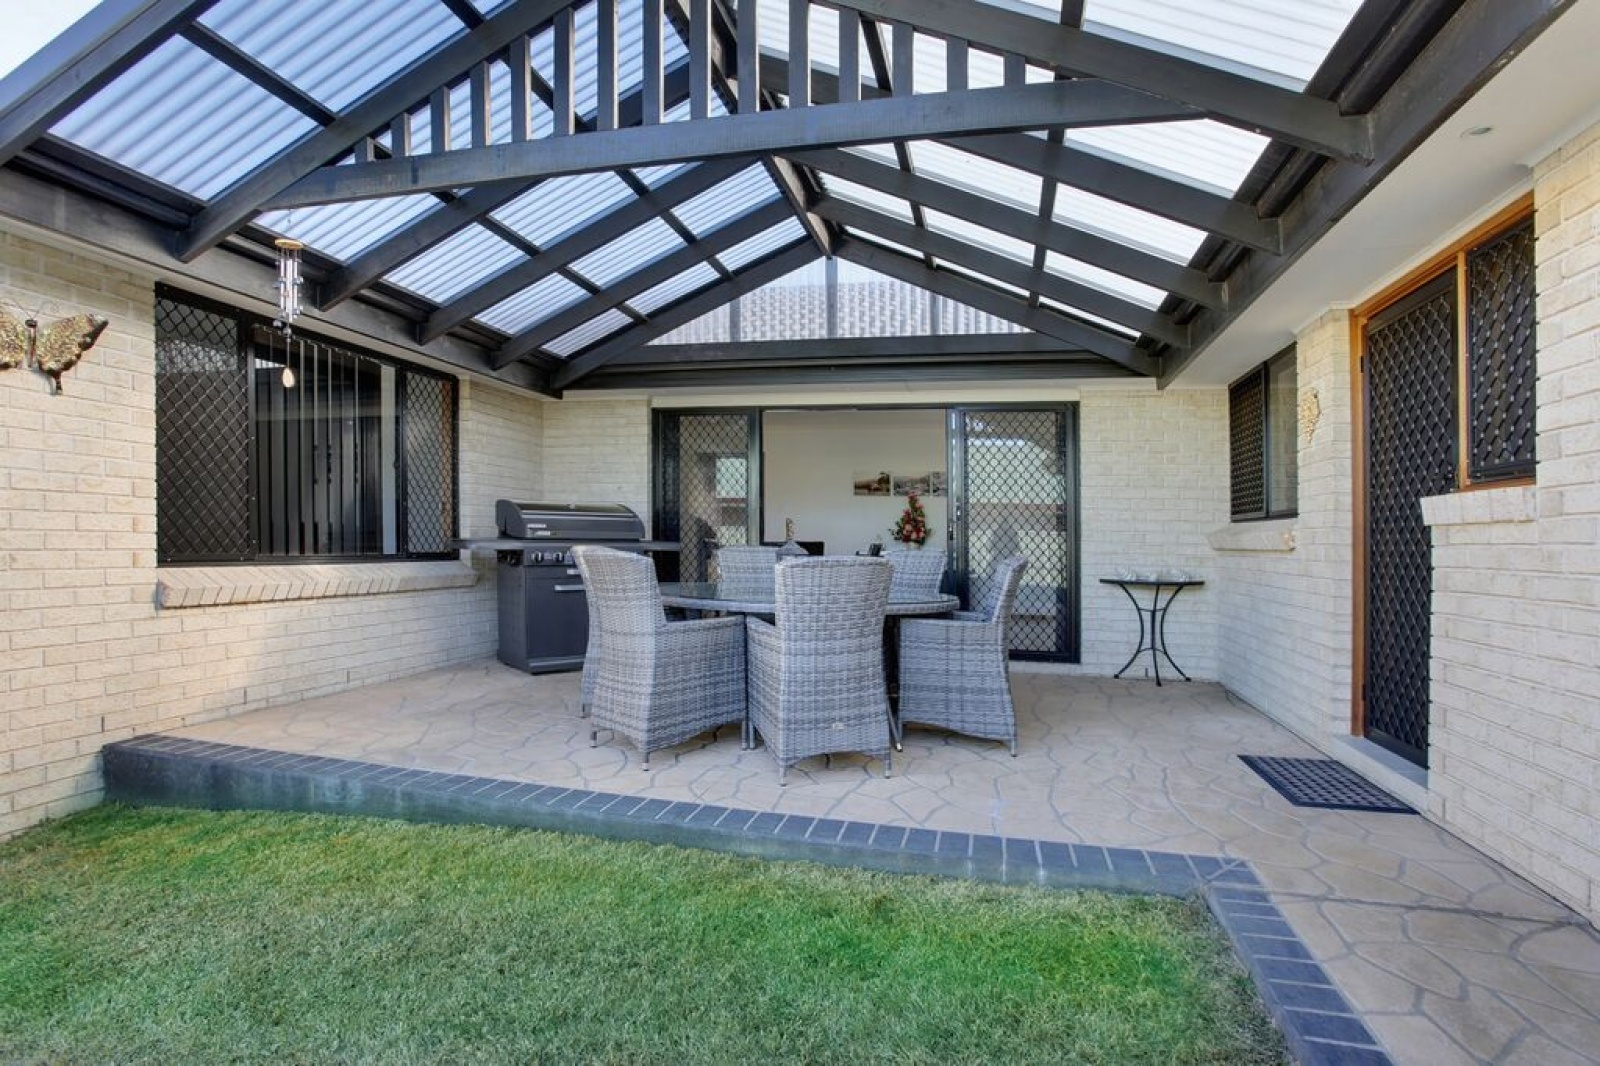 44 George Bransby Circuit,Harrington Park,NSW,4 Bedrooms Bedrooms,2 BathroomsBathrooms,House,George Bransby Circuit,1188